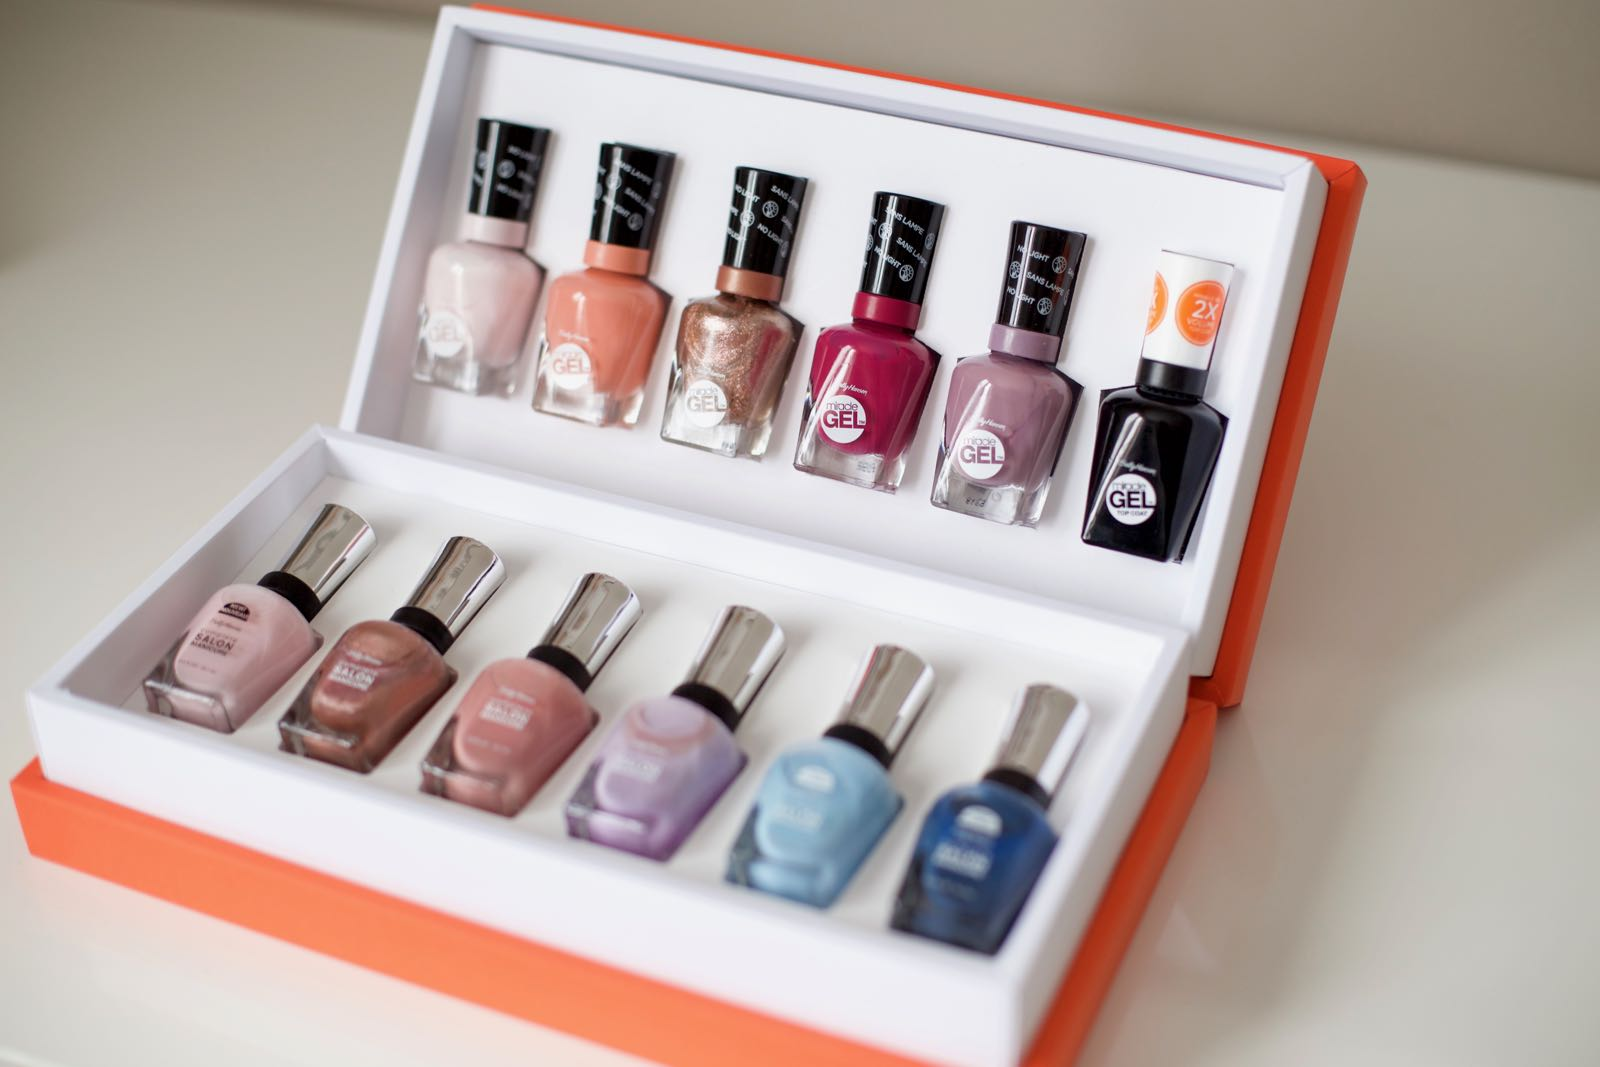 First row (from left to right): Little Peony, Bourbon Belle, Terra Coppa, Mötley Hue, Street Flair, Top Coat.  Second row (from left to right): Stellar Style, World is My Oyster, Pink Pong, What is Carnation?, Dream Boat, Tropic Thunder.